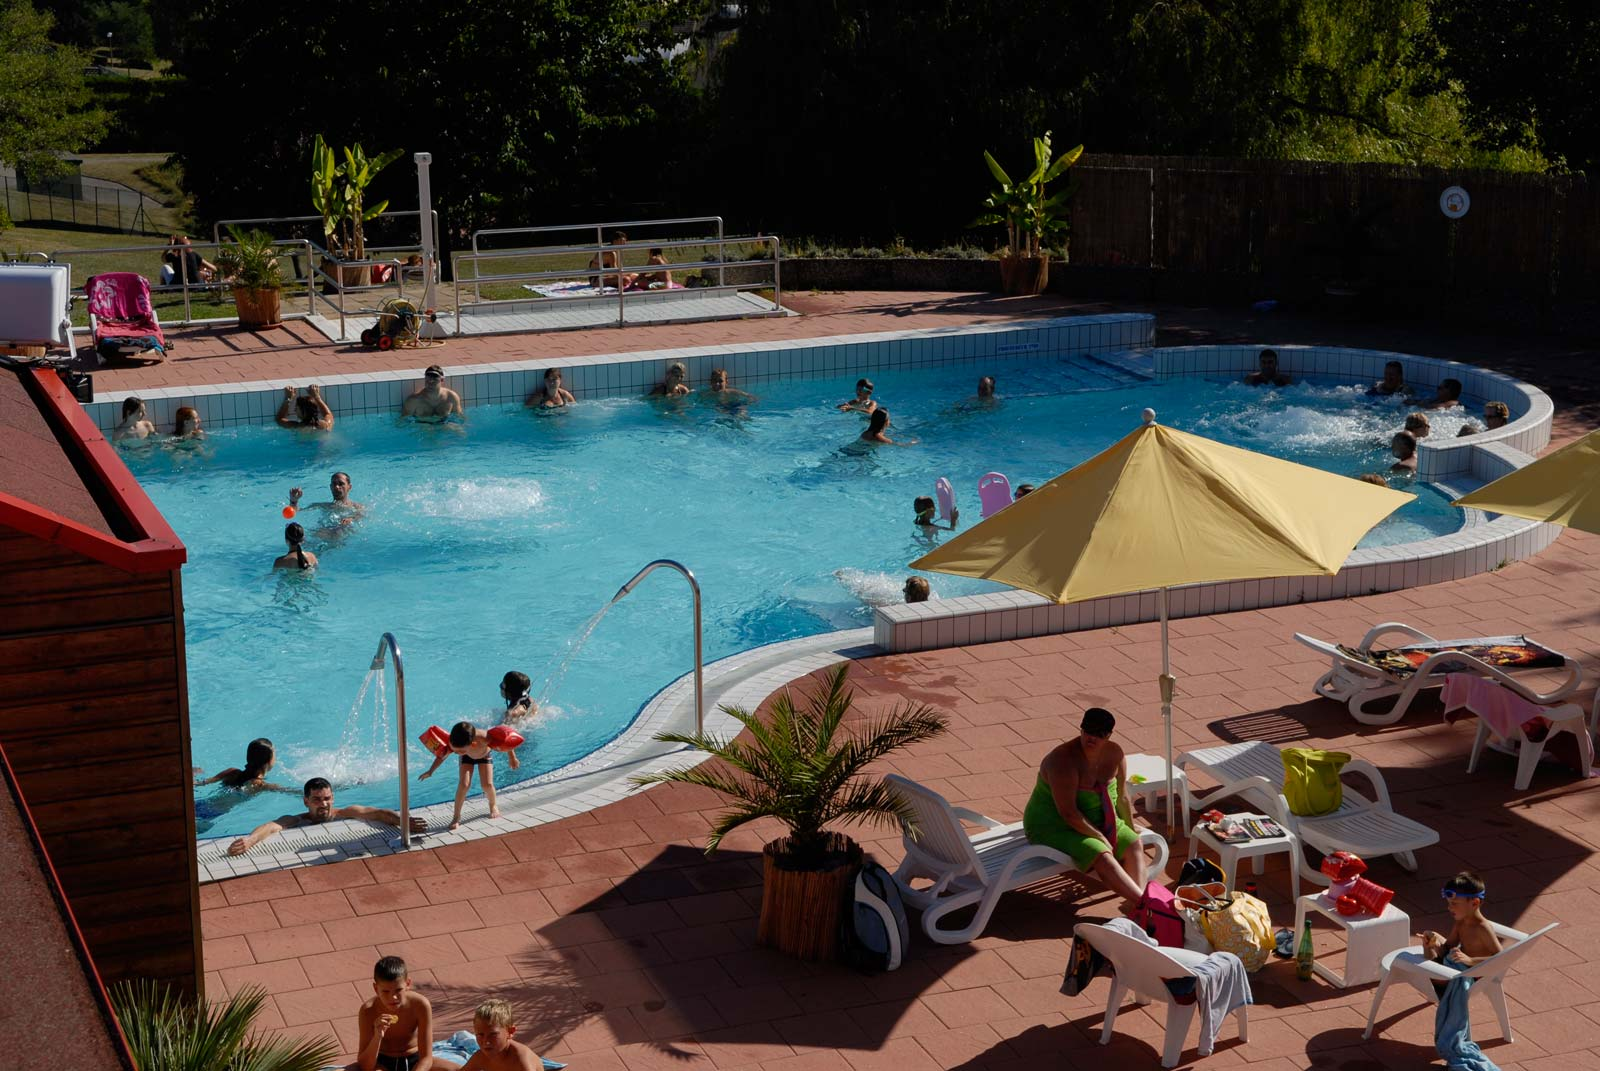 Cash Pool Frankreich Swimming Pool Summer Winter Les Aqualies Niederbronn Les Bains